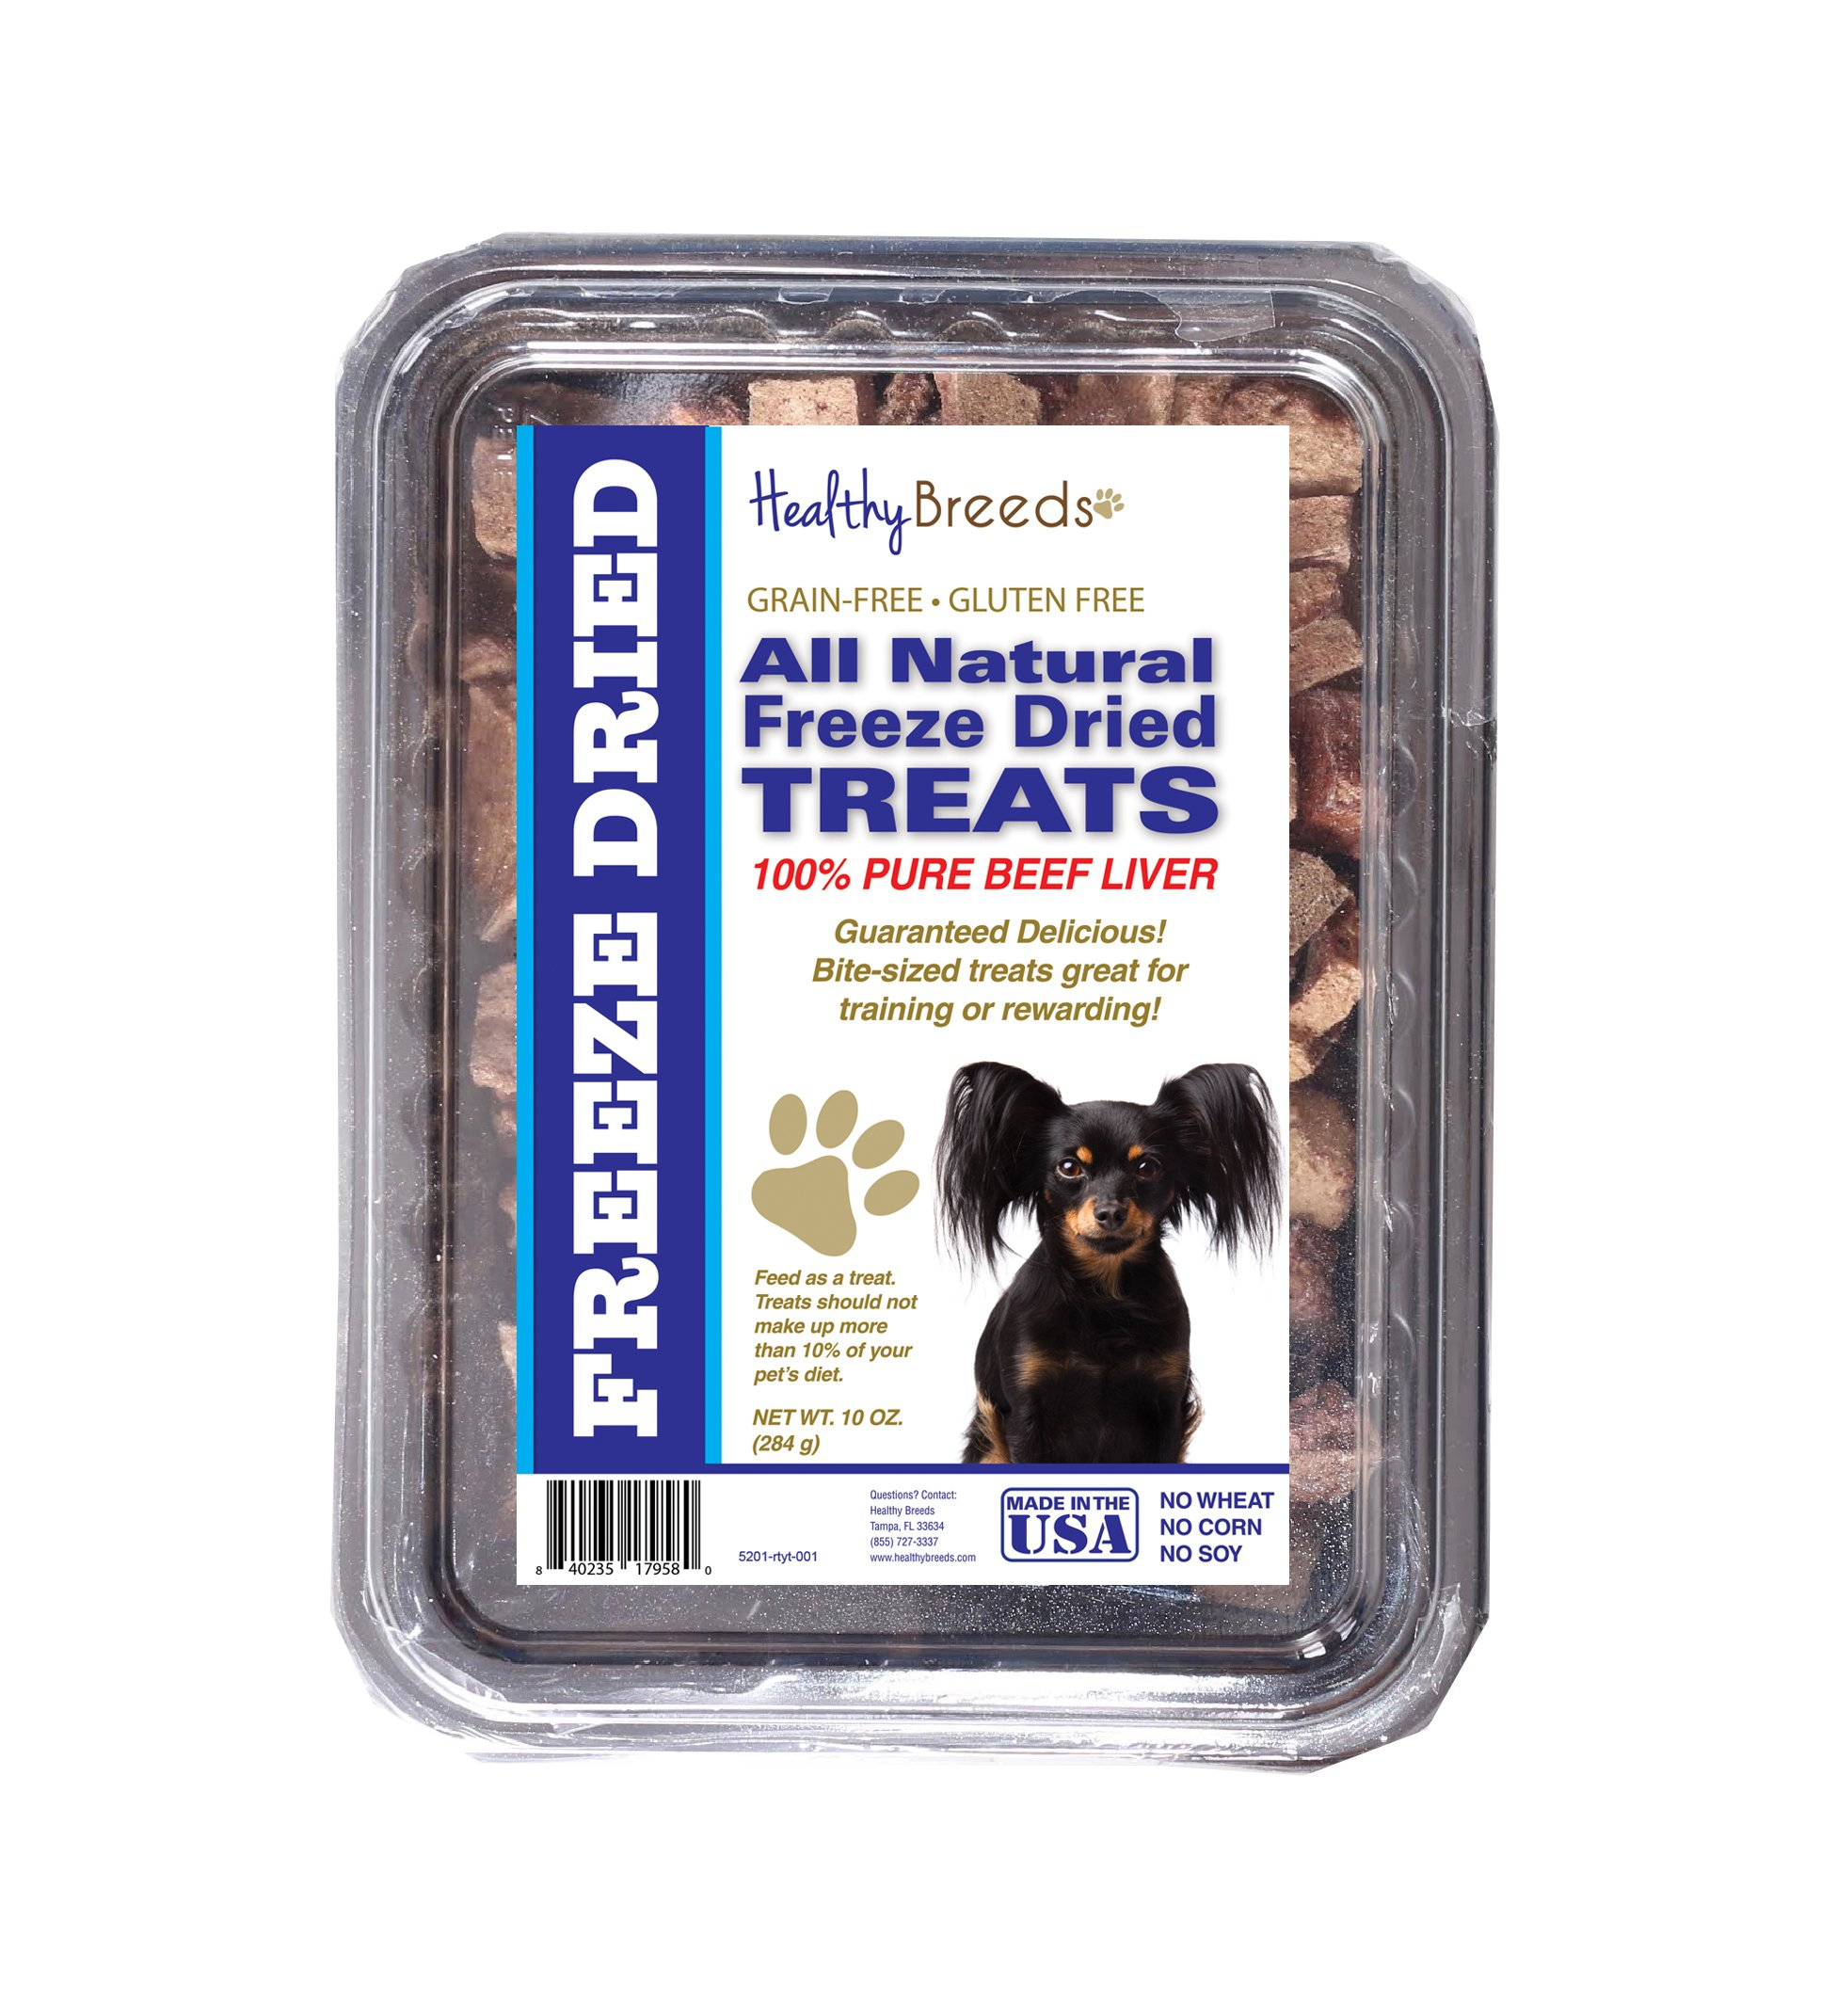 Healthy Breeds Freeze Dried Treats for Dogs for Russian Toy Terrier - Over 200 Breeds - Multiple Meats Meat Made in The USA - 8 oz